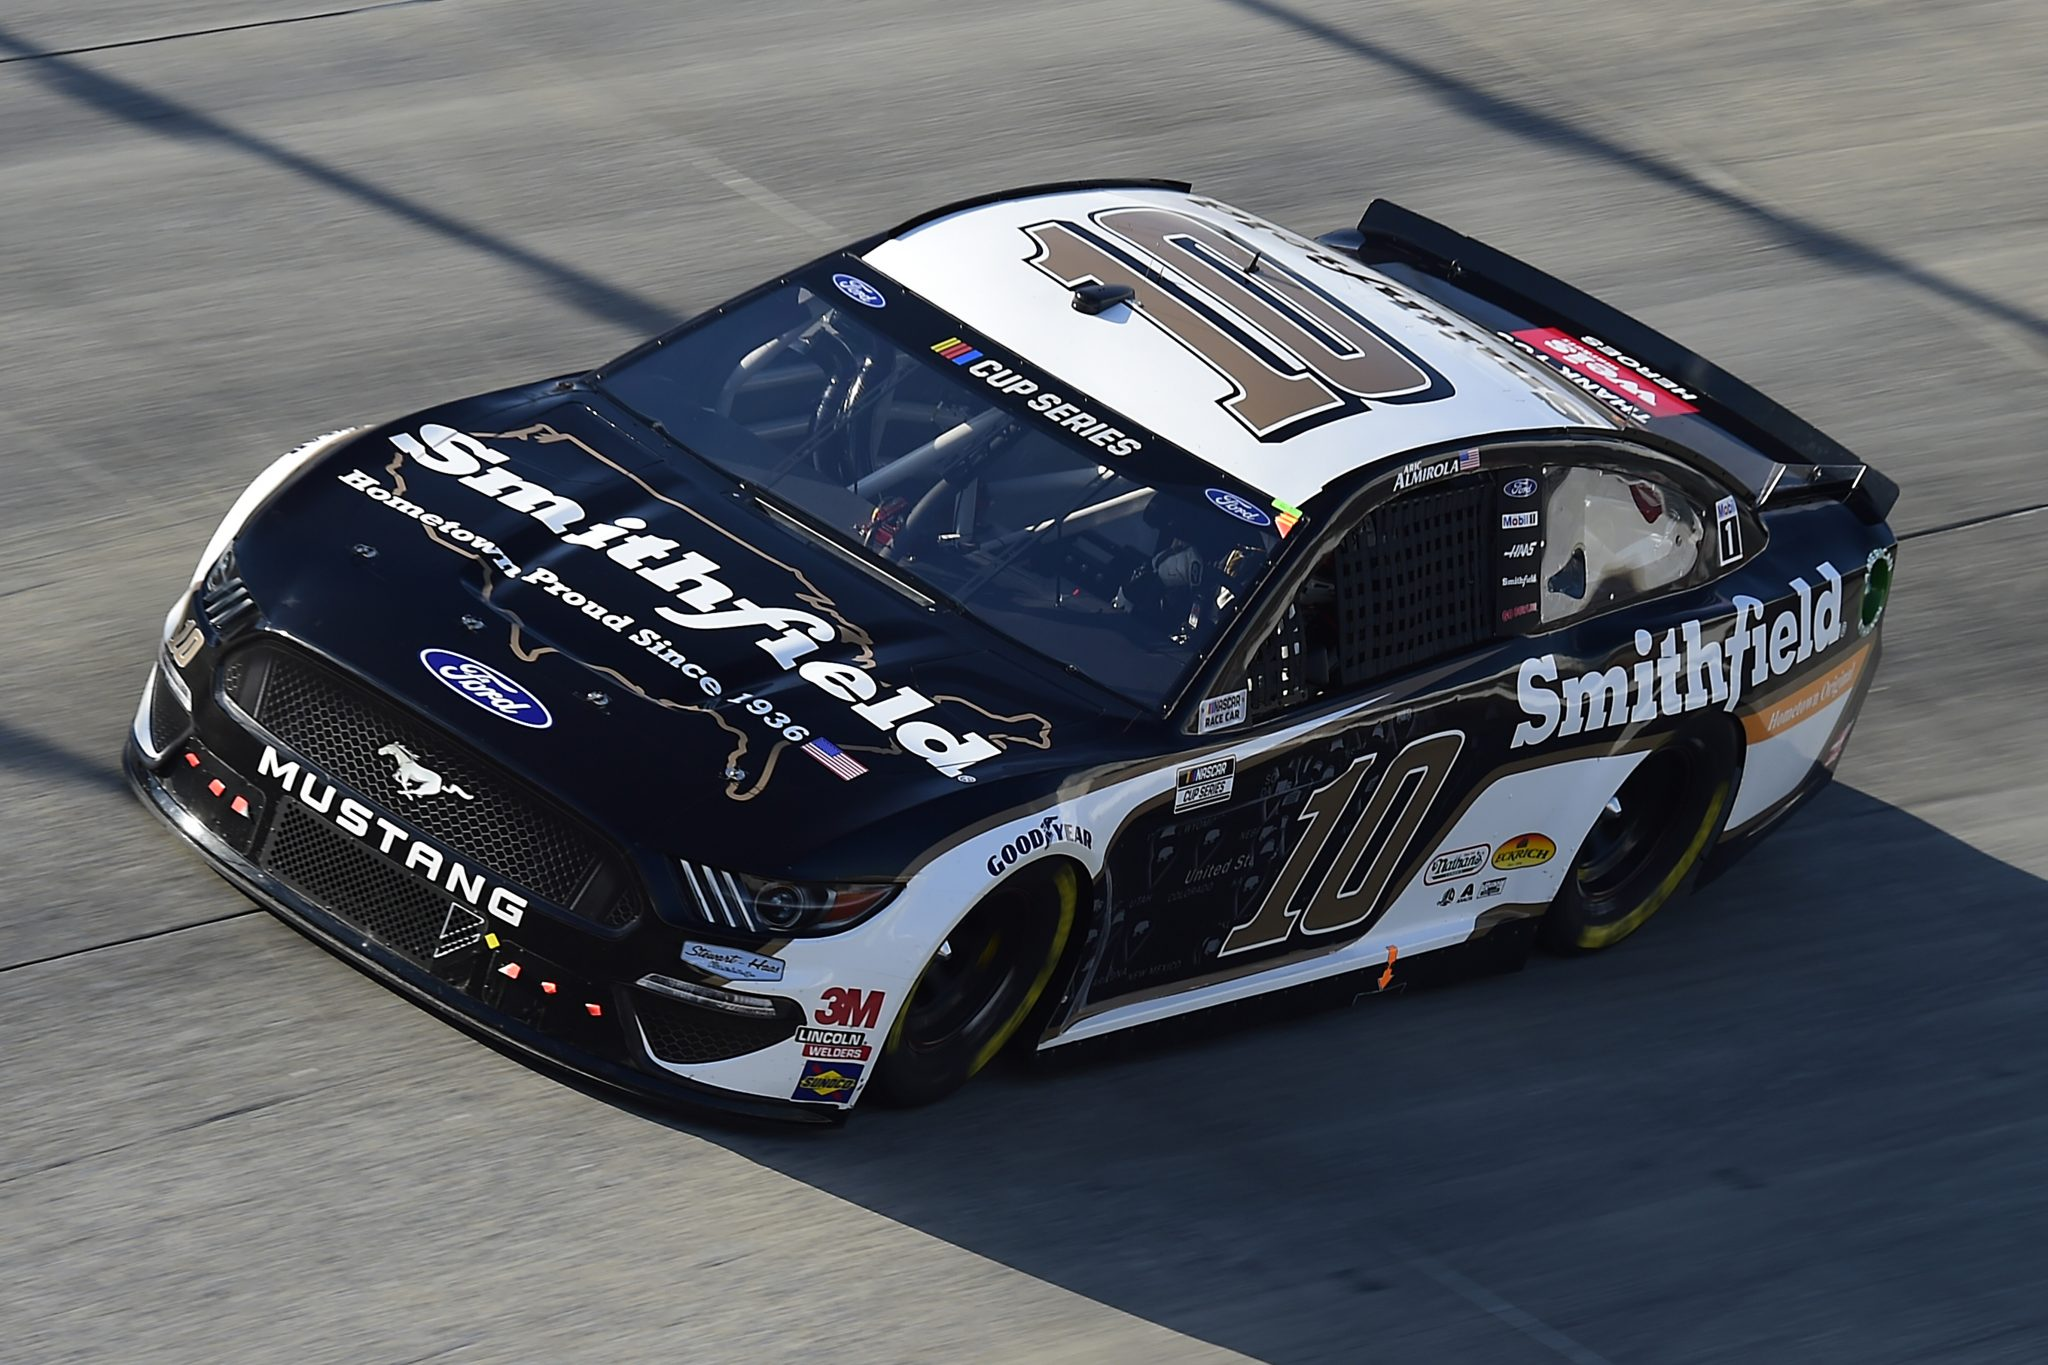 DOVER, DELAWARE - AUGUST 23: Aric Almirola, driver of the #10 Smithfield Hometown Original Ford, drives during the NASCAR Cup Series Drydene 311 at Dover International Speedway on August 23, 2020 in Dover, Delaware. (Photo by Jared C. Tilton/Getty Images) | Getty Images